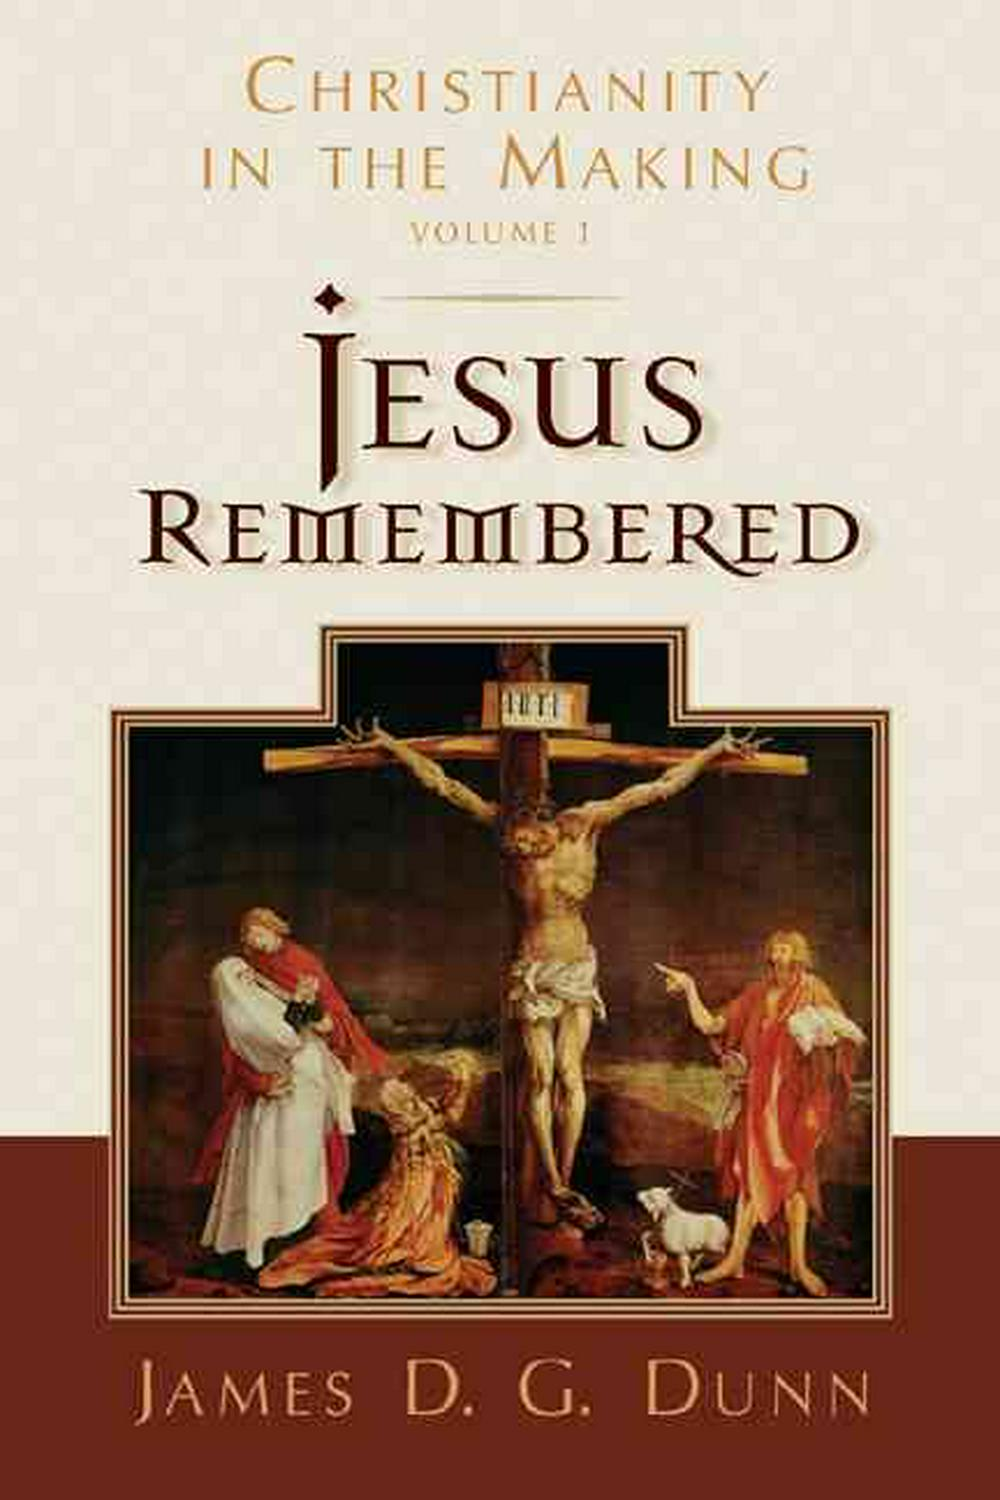 Jesus Remembered: Christianity in the Making v. 1 by Dunn, ISBN: 9780802839312